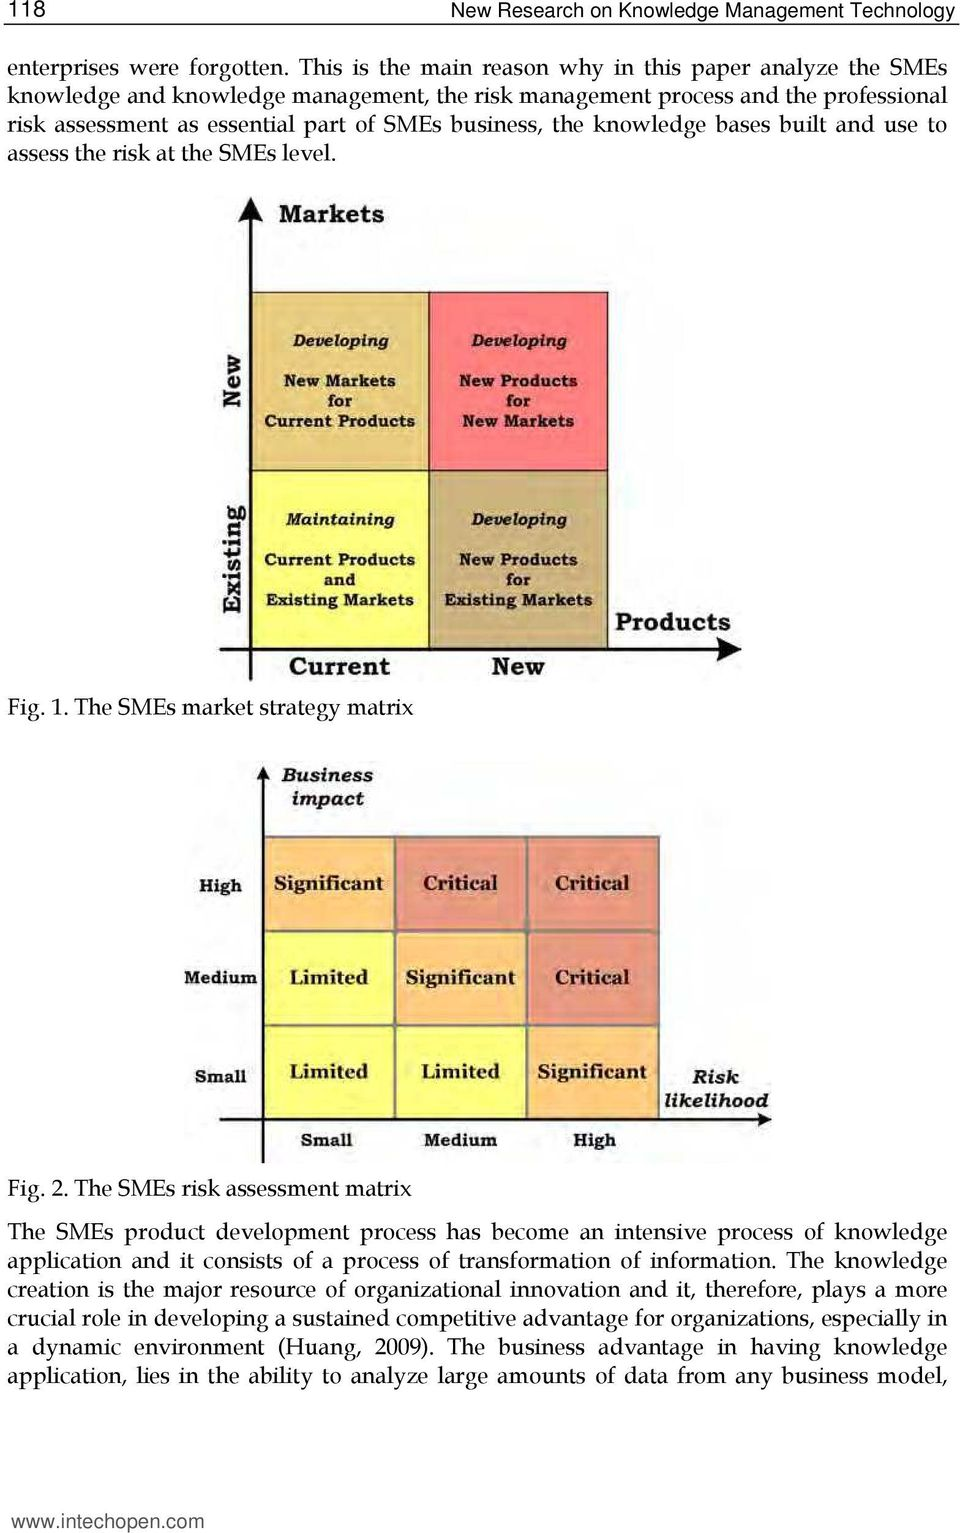 knowledge bases built and use to assess the risk at the SMEs level. Fig. 1. The SMEs market strategy matrix Fig. 2.